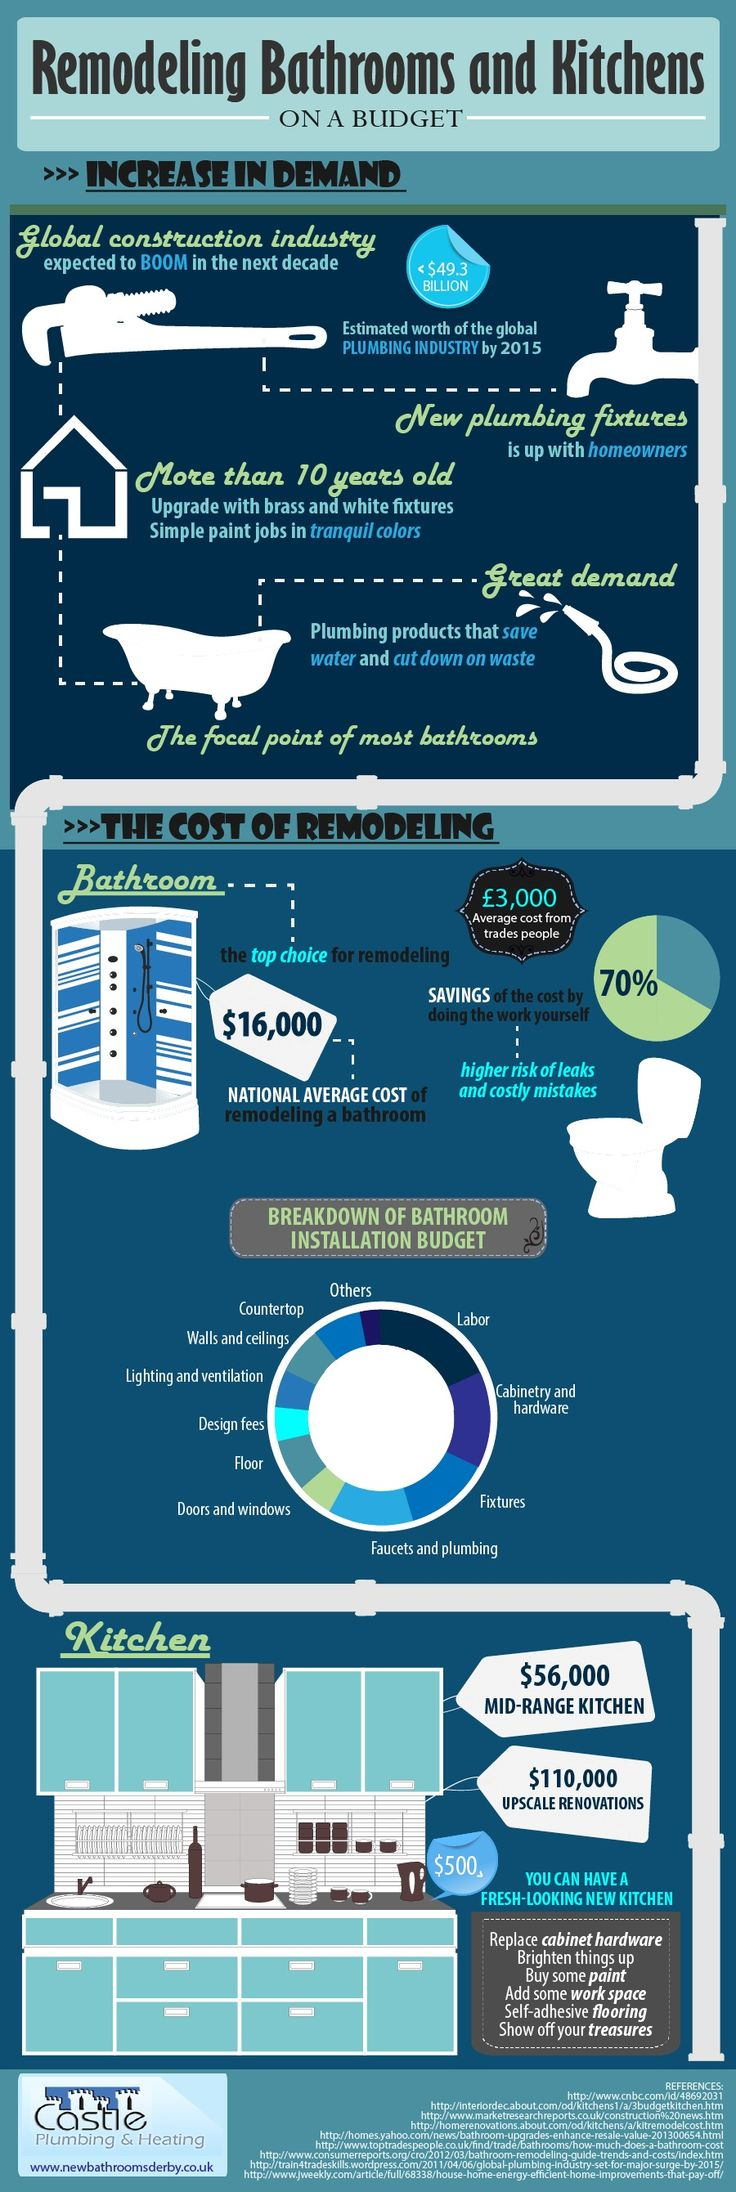 Picture Gallery For Website The cost of remodeling infographic